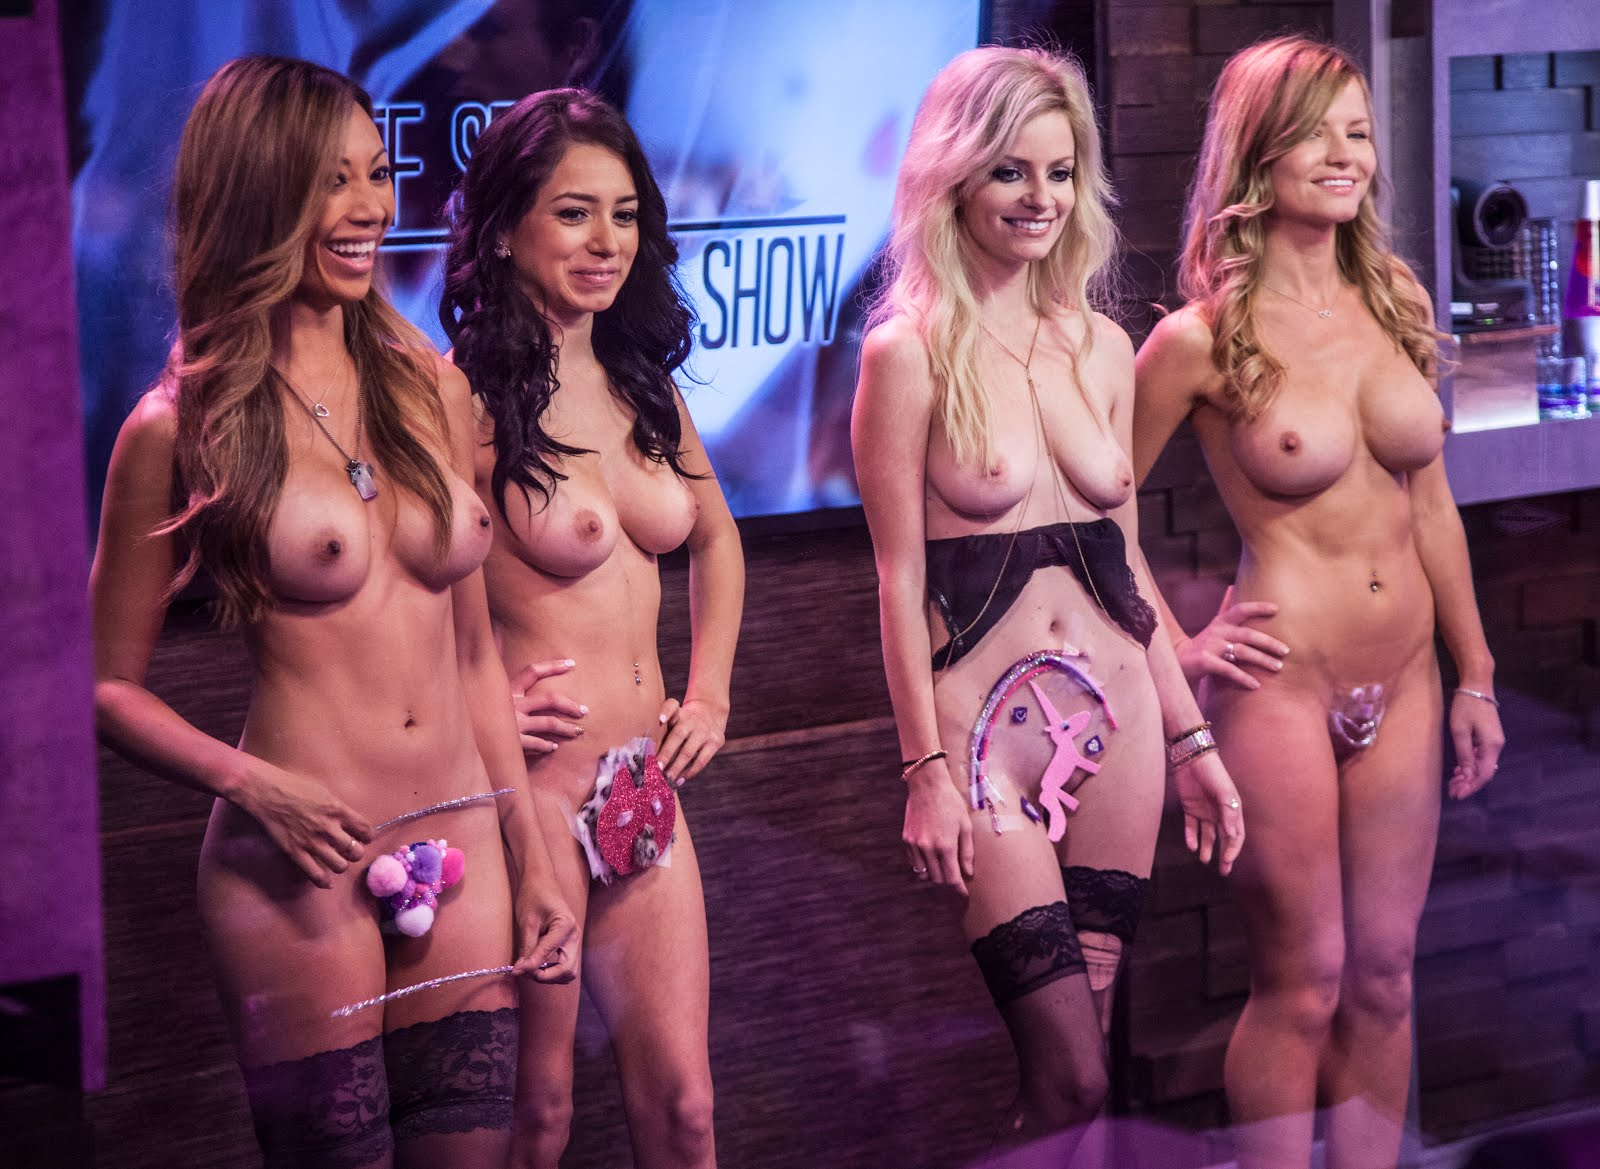 girls of survivor show naked